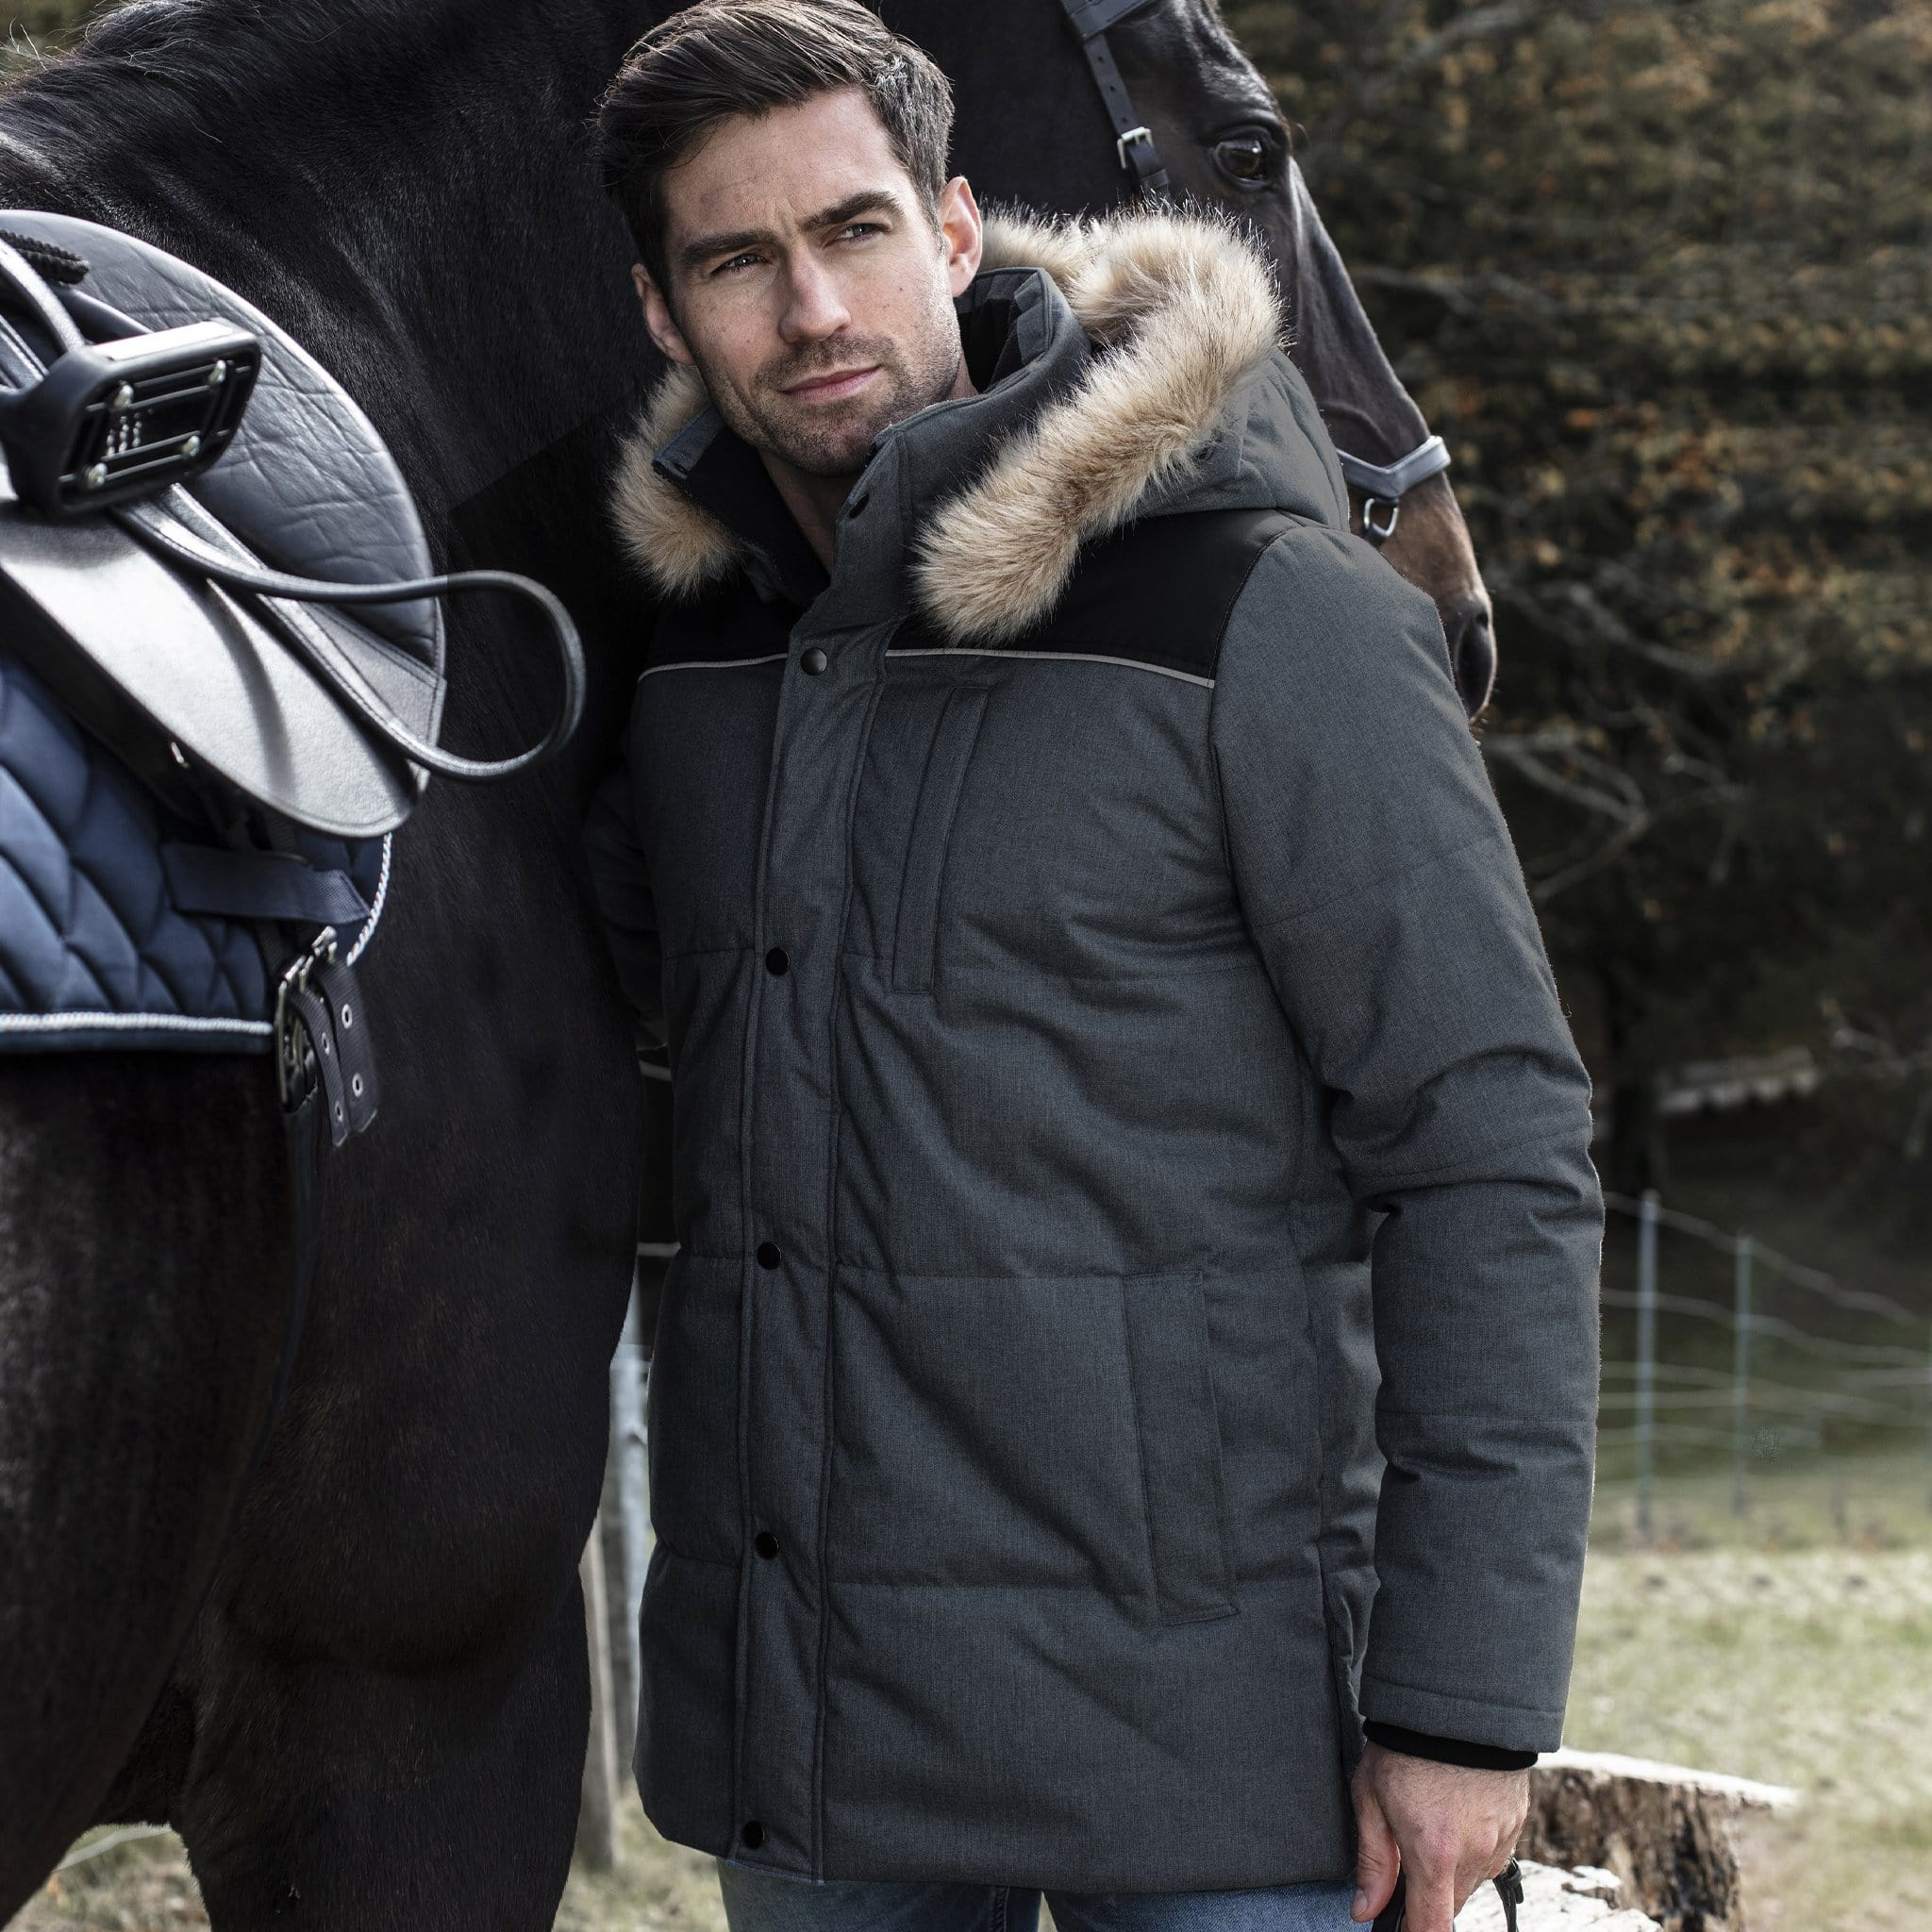 Horseware Padded Parka With Removable Hood On Model With Horse CAHCTF.